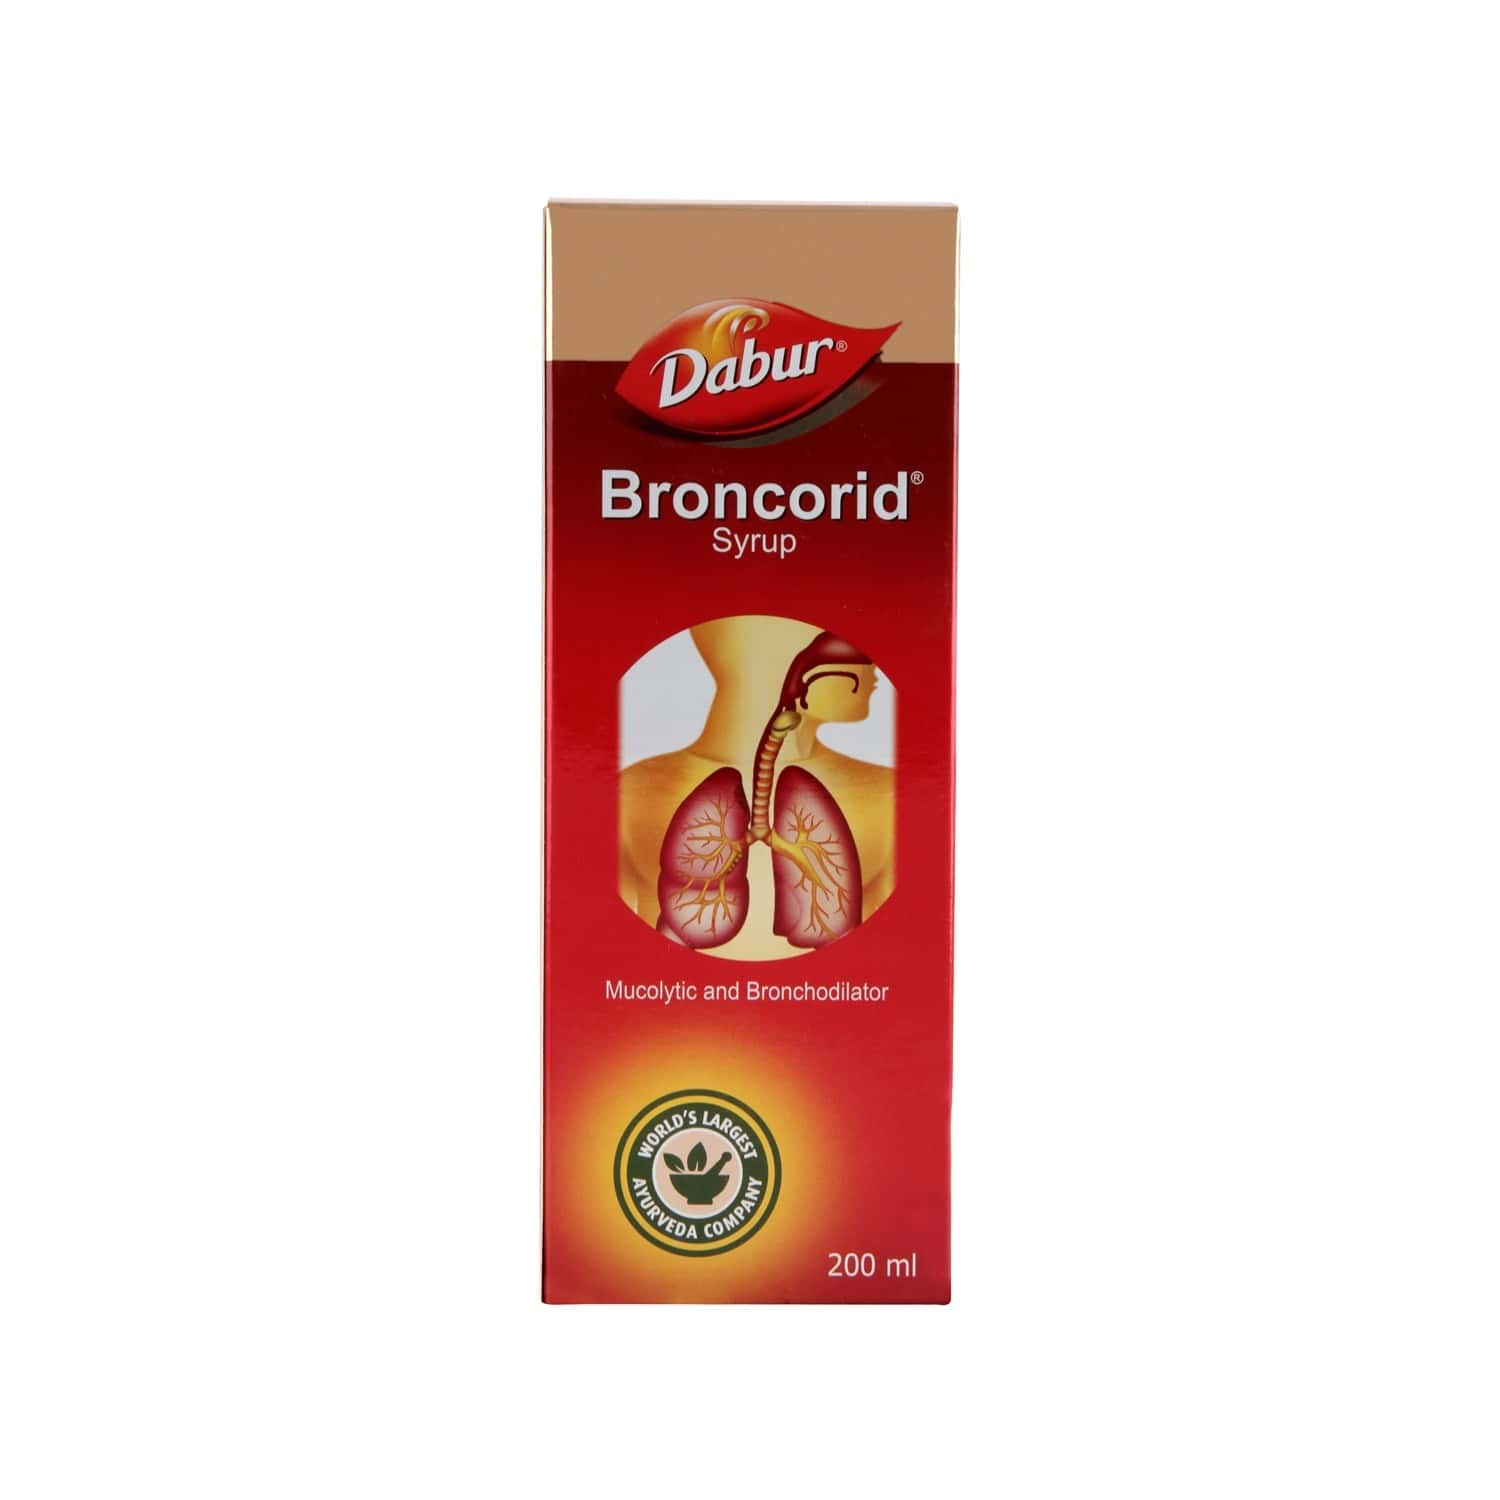 Dabur Broncorid Cough Syrup Bottle Of 200 Ml